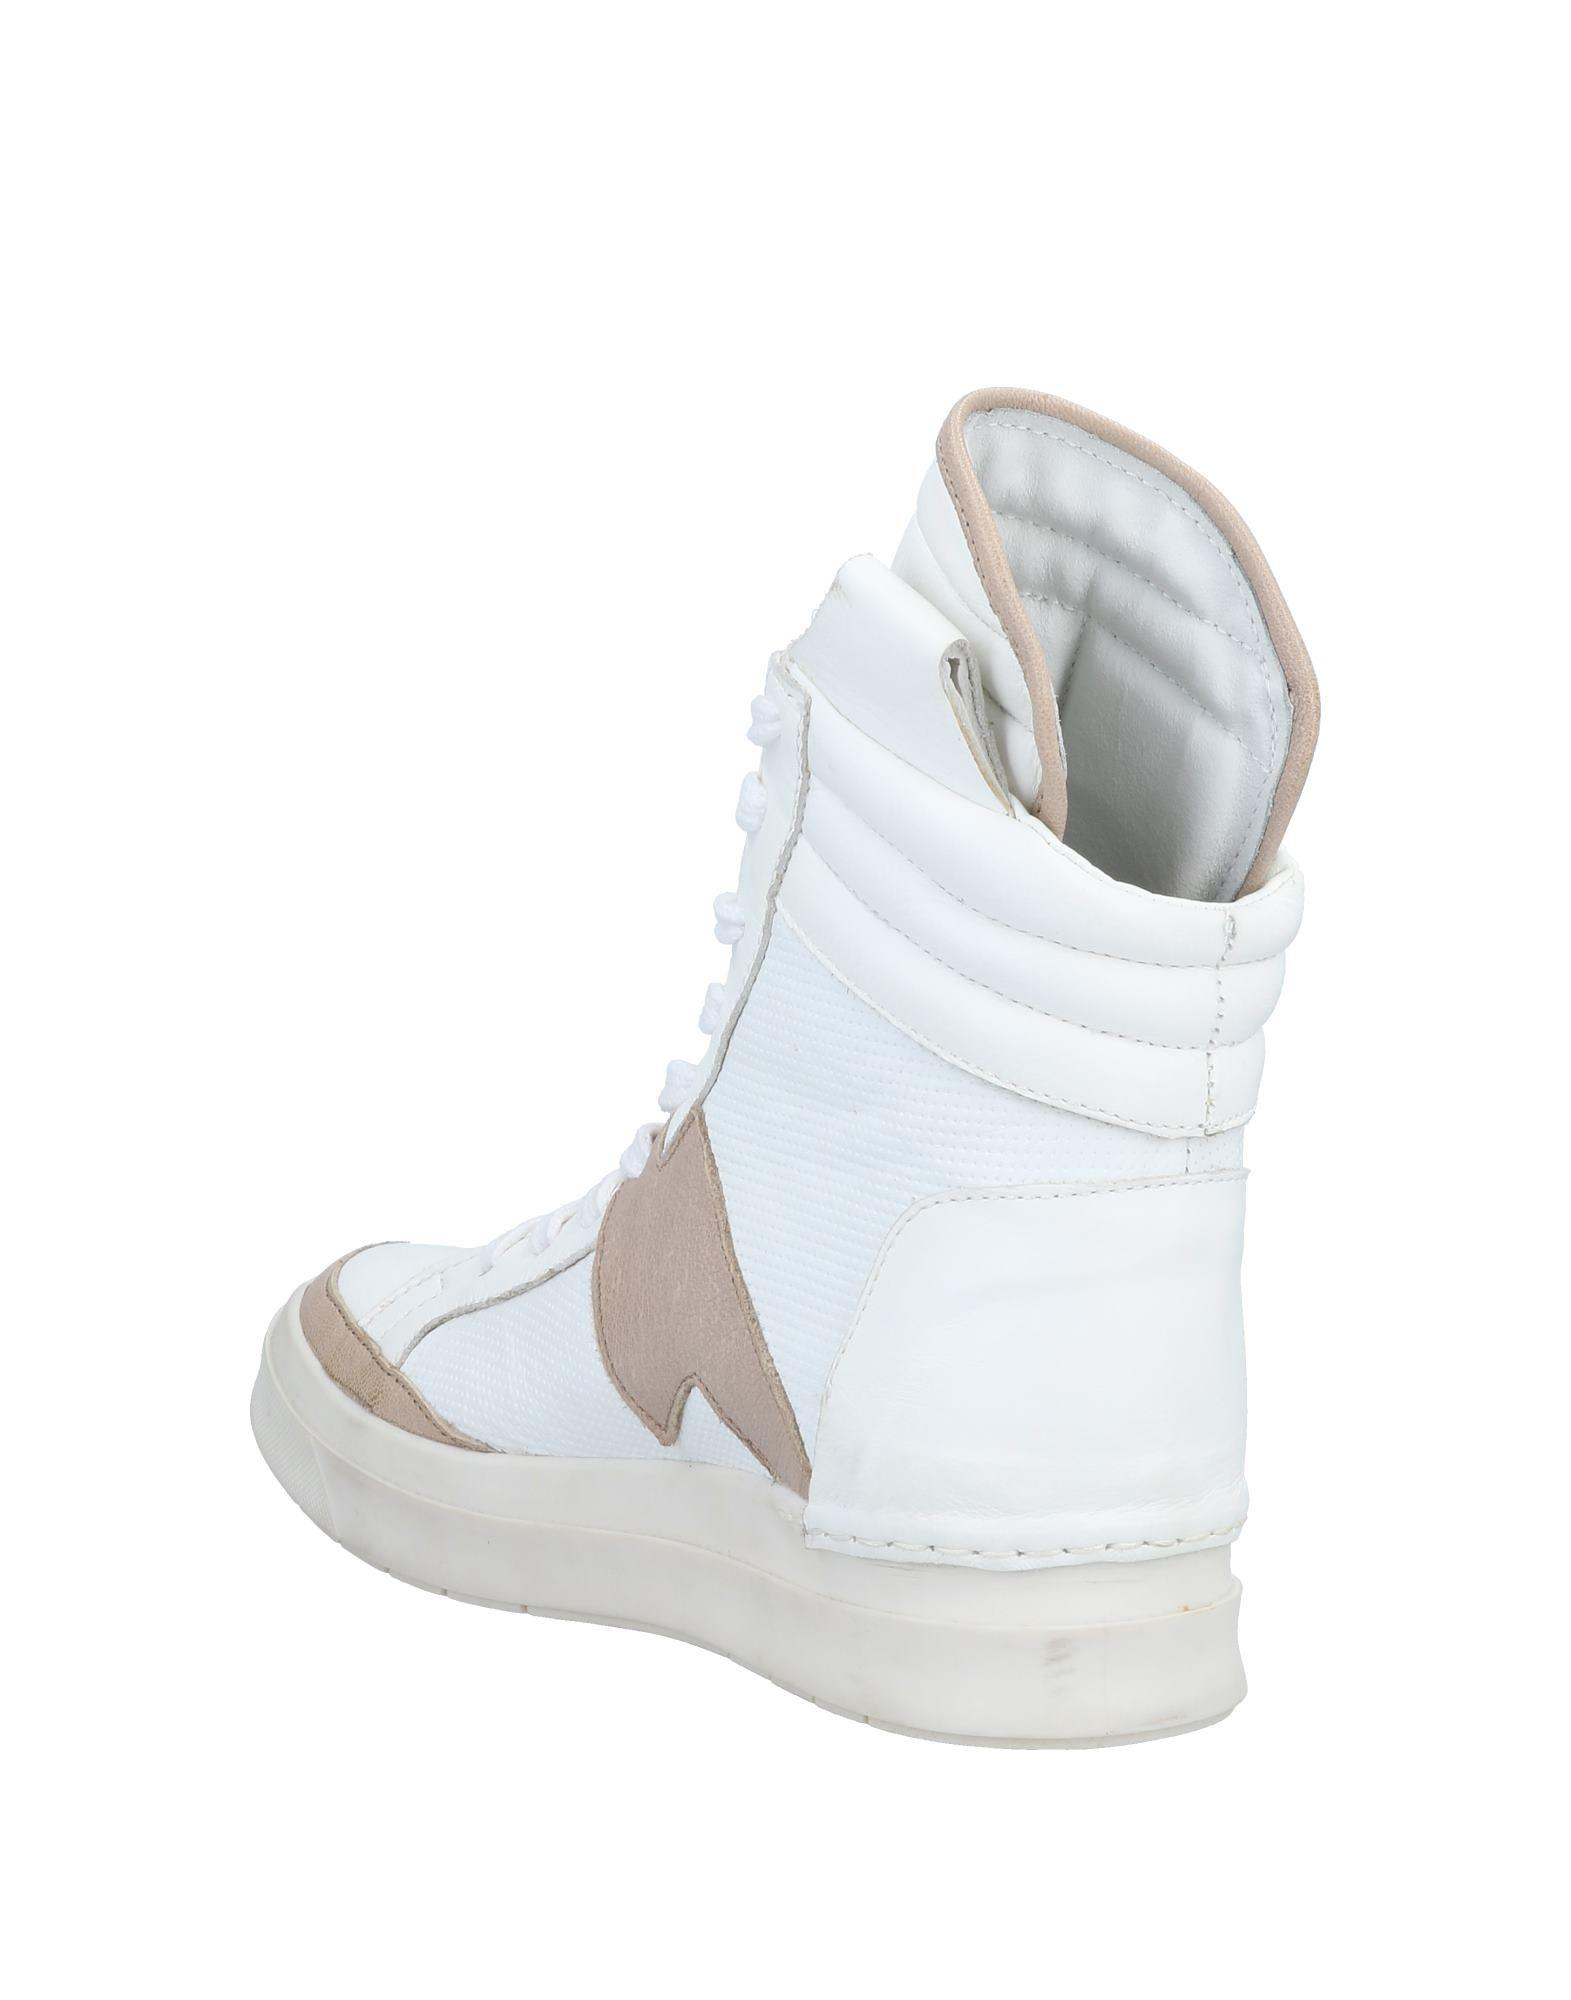 amp; White for Men in Lyst Ca Sneakers High Cinzia tops Araia By wwzHxZ7qY